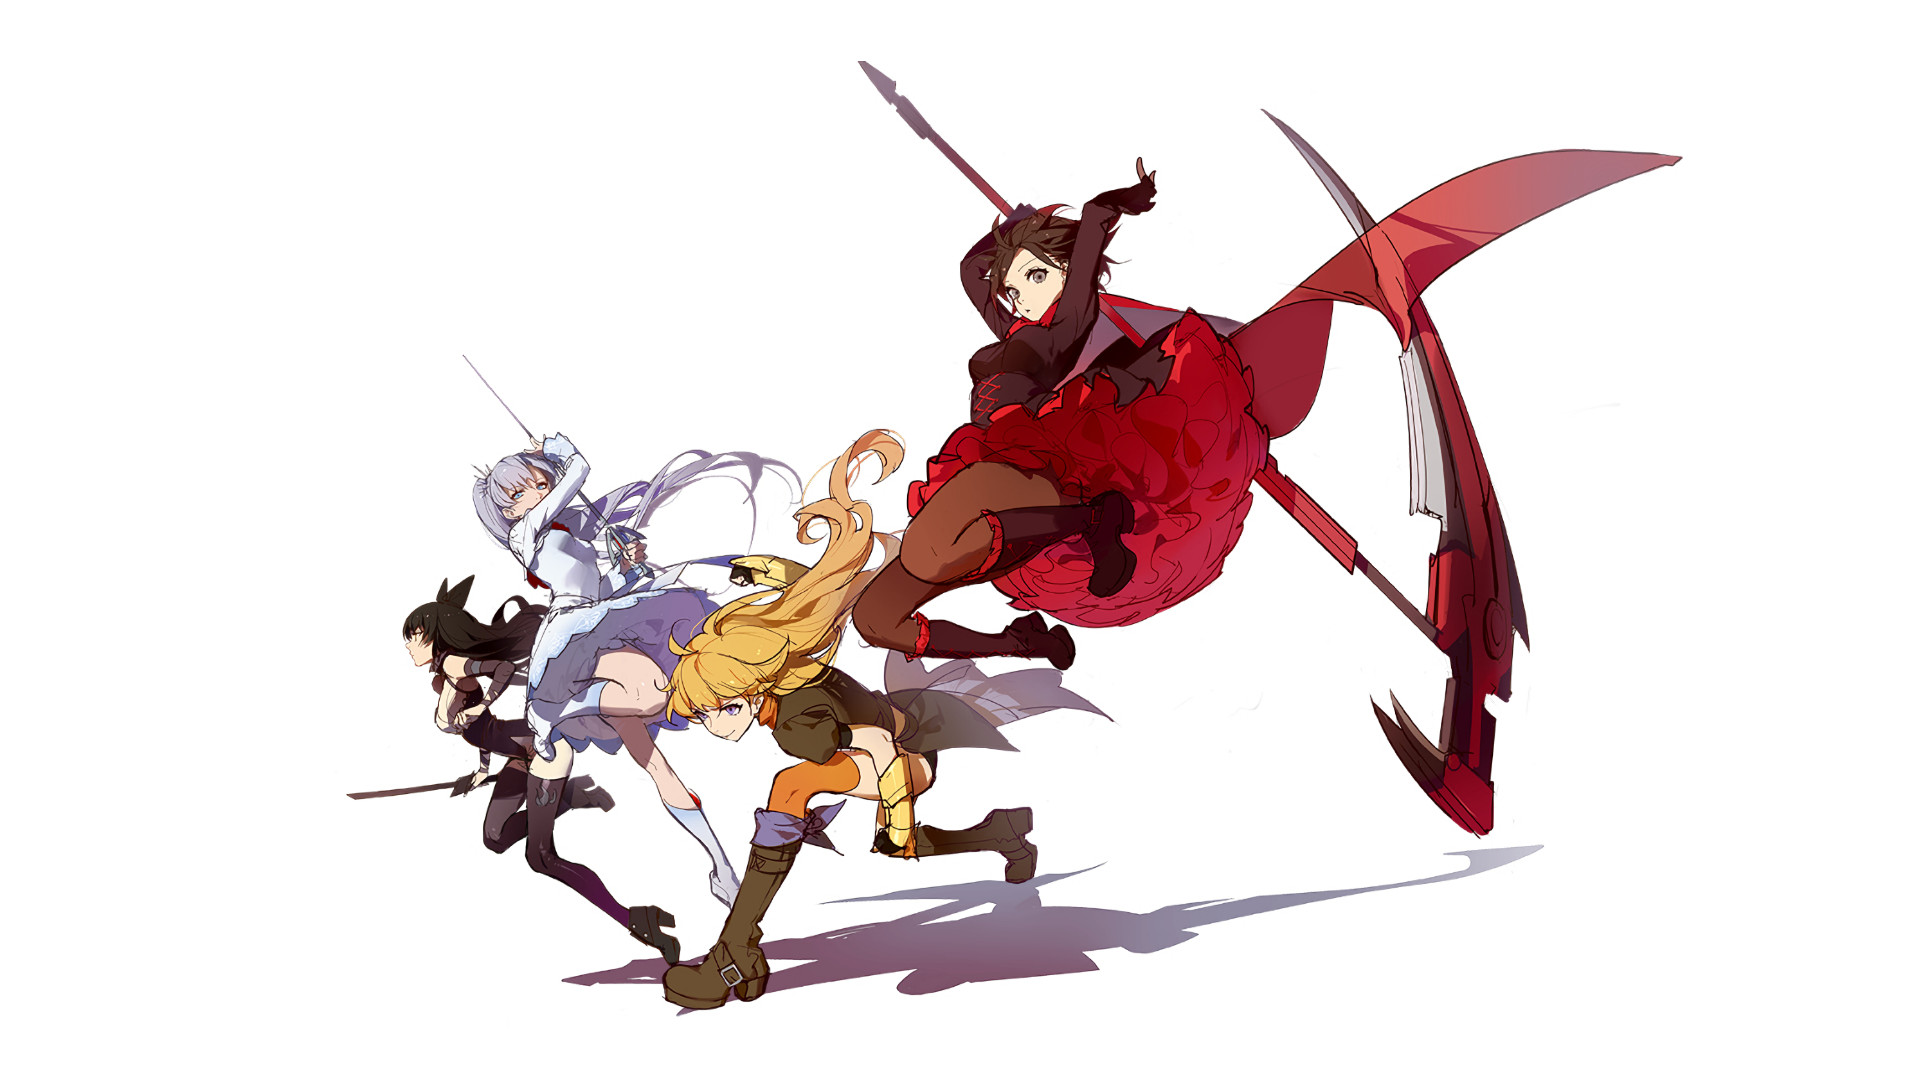 RWBY Girls [RWBY](1920×1080) Need #iPhone #6S #Plus #Wallpaper/ #Background  for #IPhone6SPlus? Follow iPhone 6S Plus 3Wallpapers/ #Backgrounds Must…